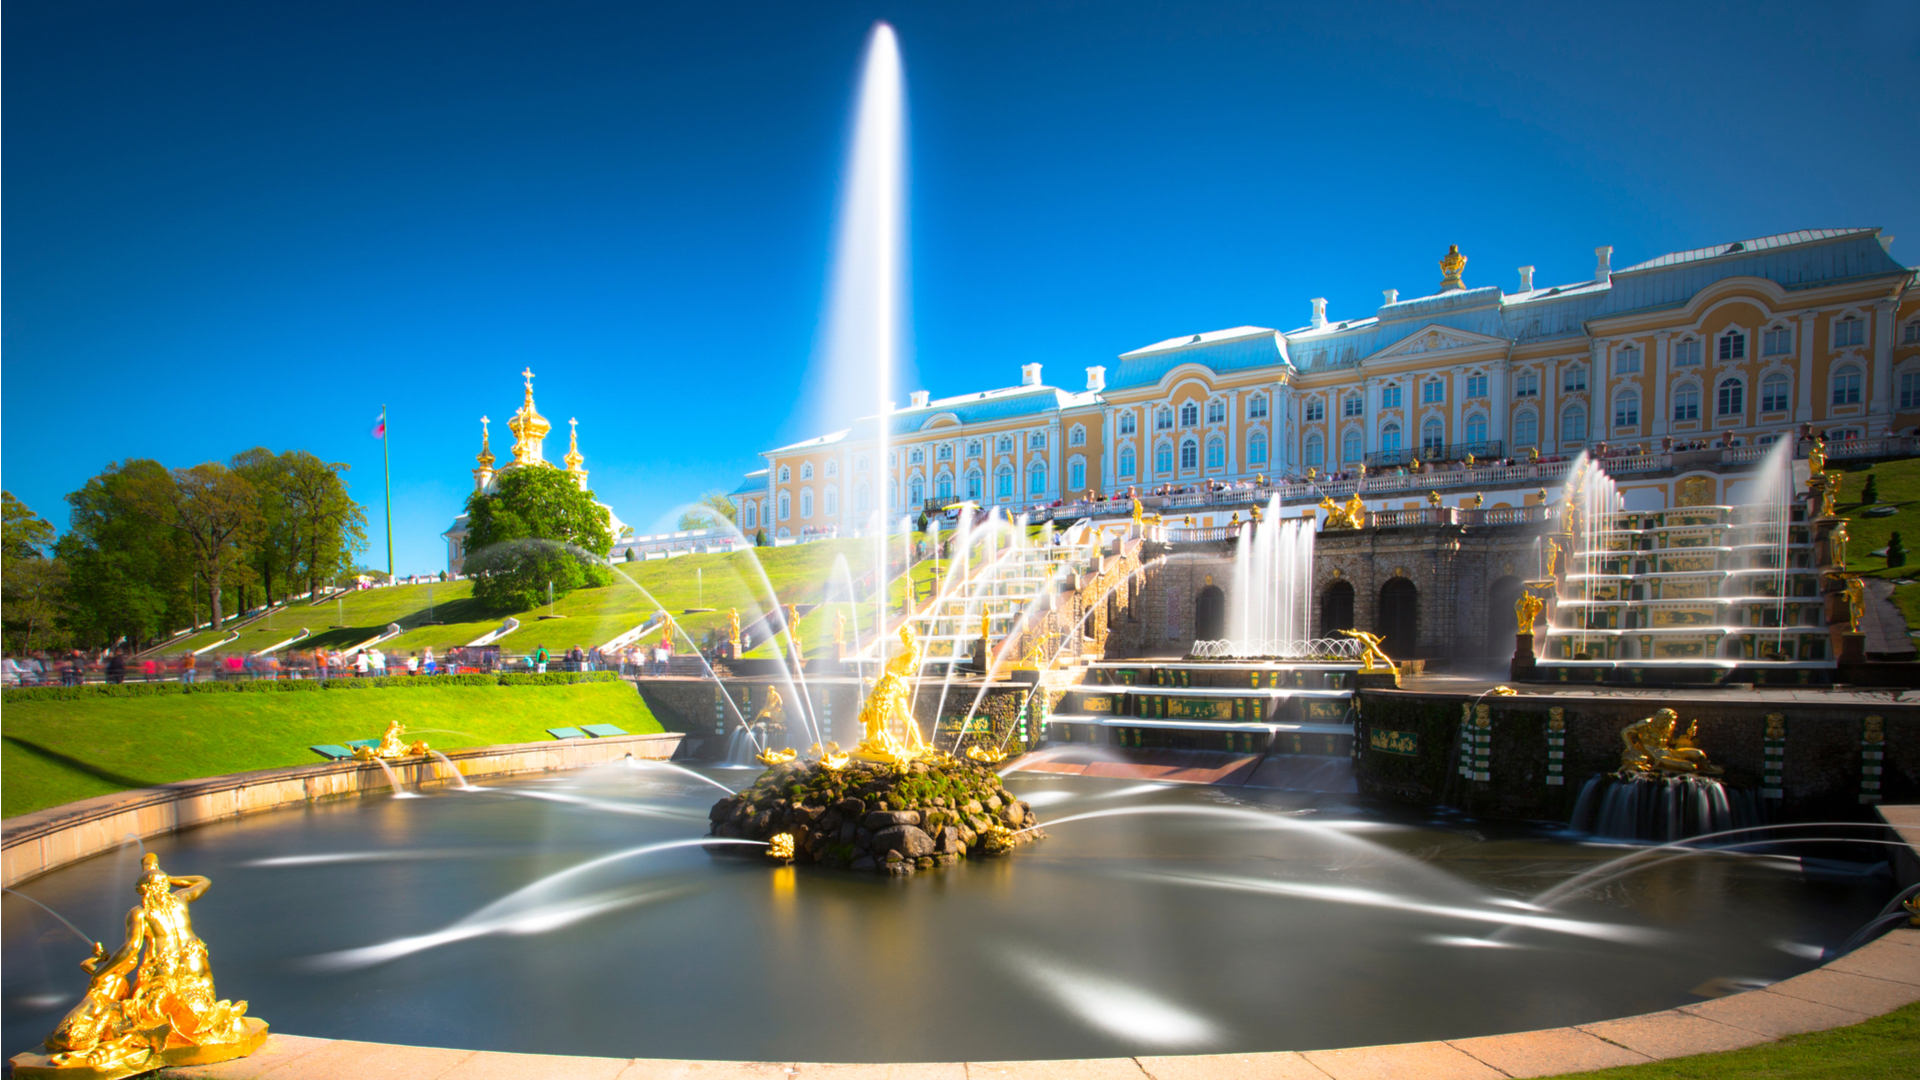 Fountain, chateau, blue sky